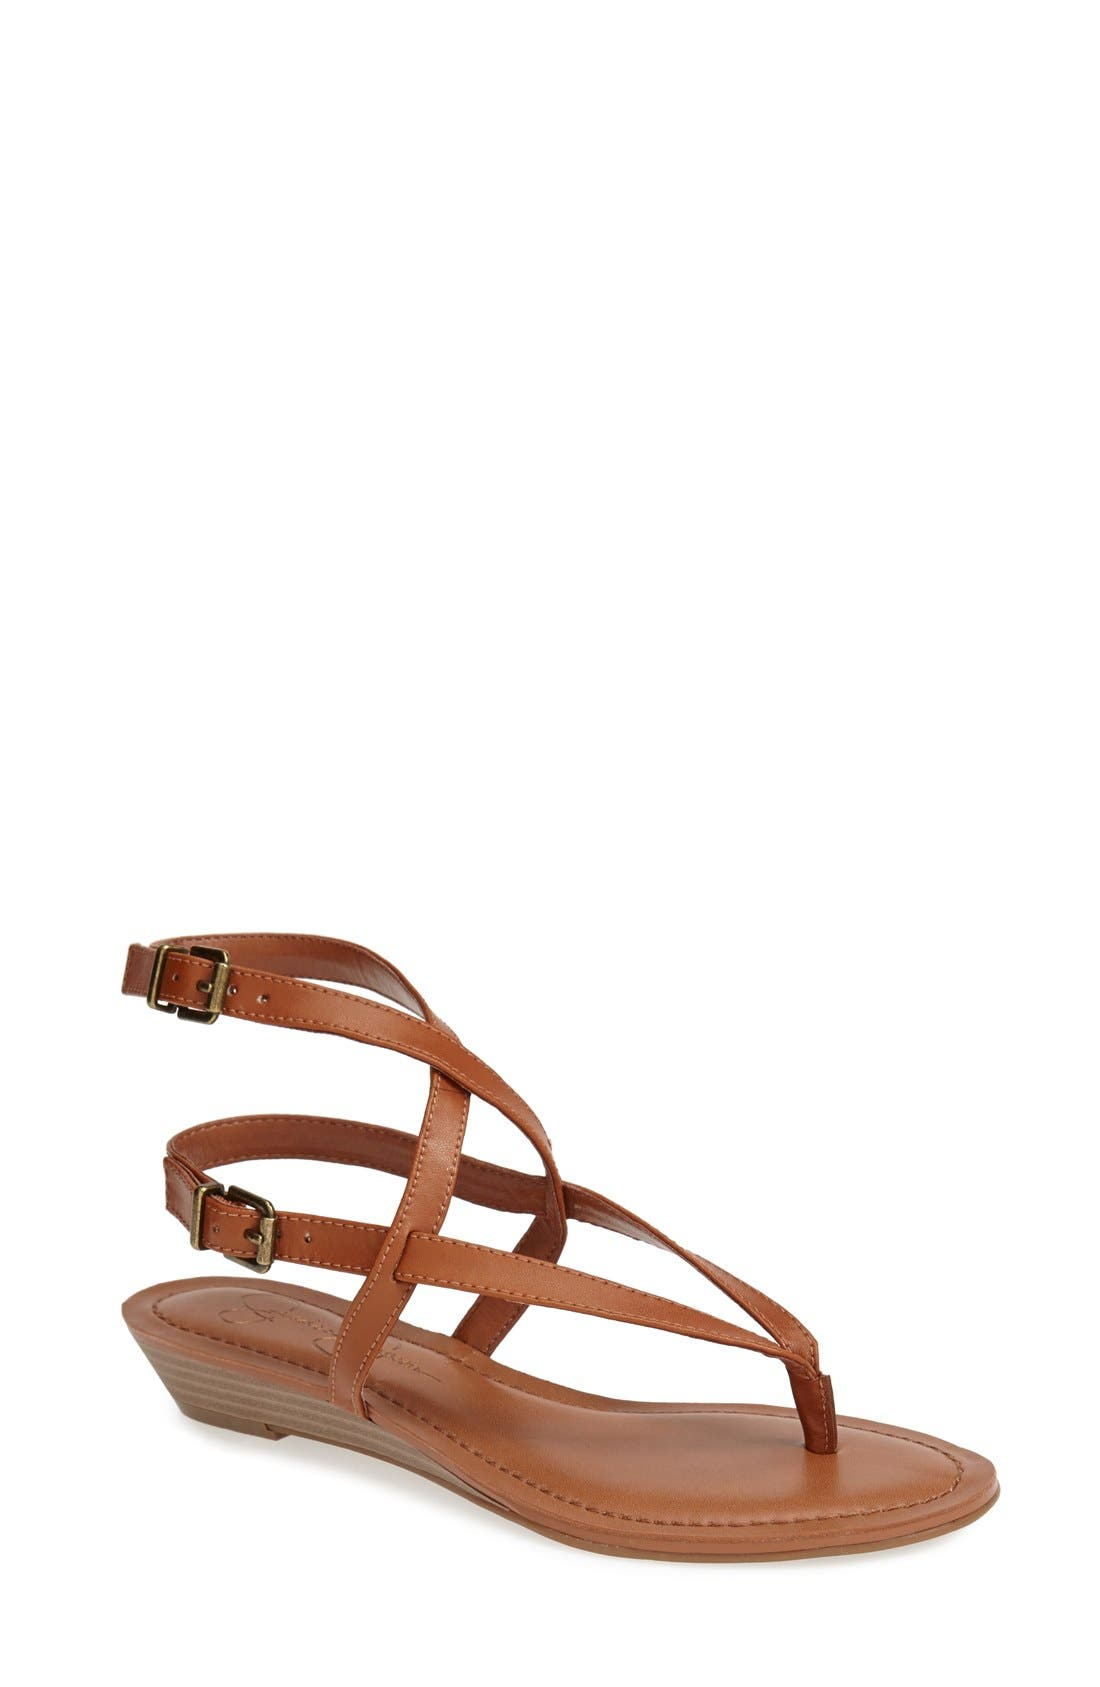 Alternate Image 1 Selected - Jessica Simpson 'Liliane' Sandal